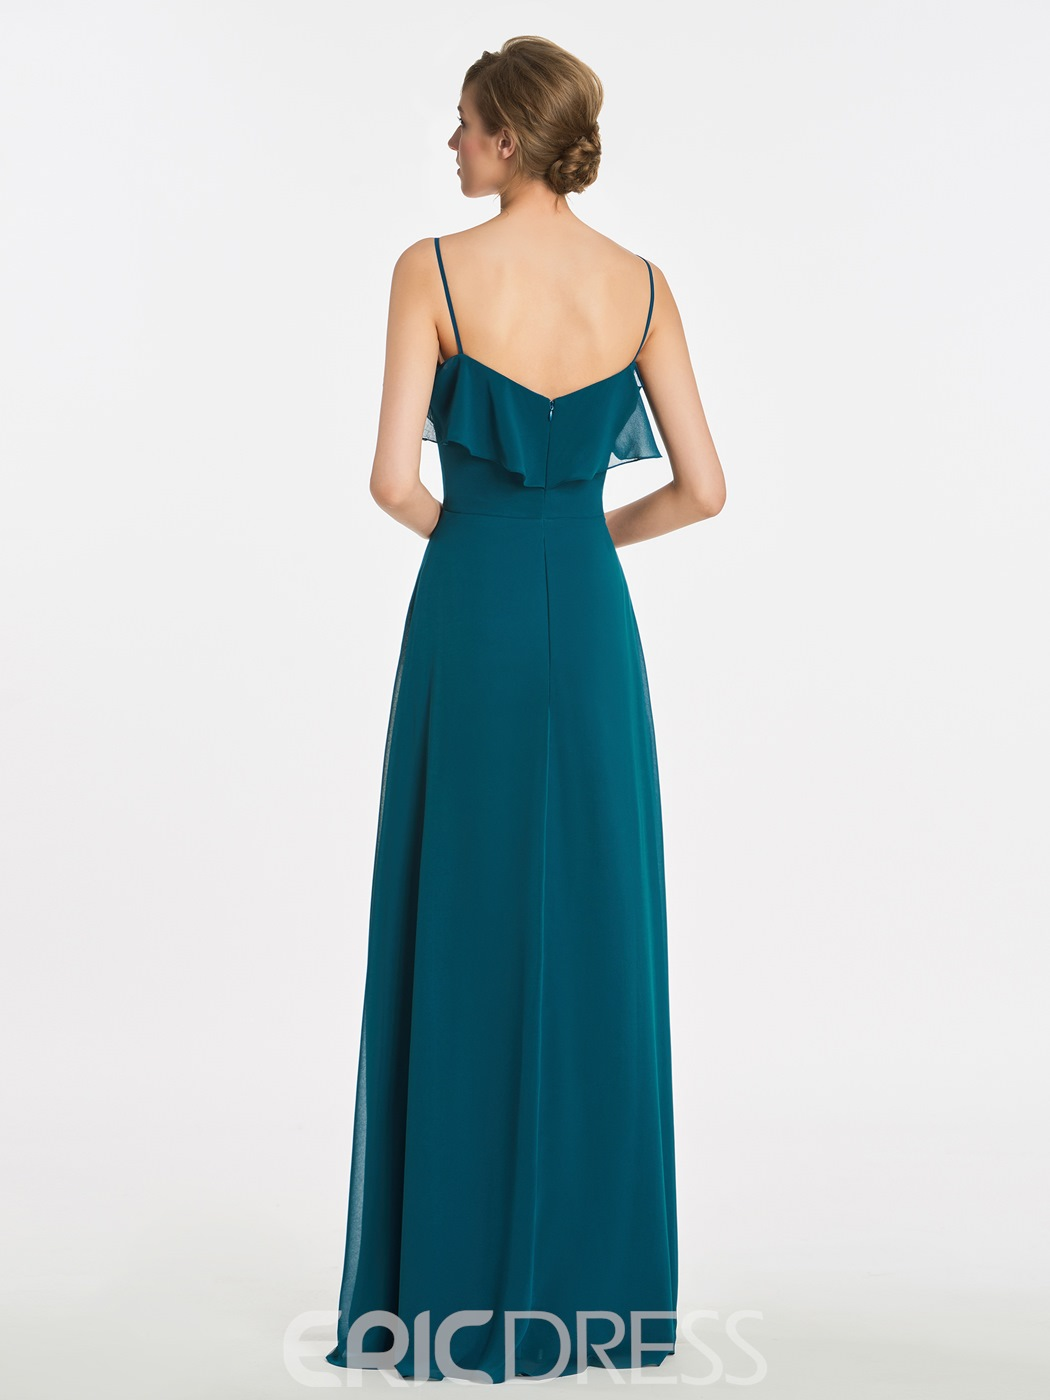 Ericdress Spaghetti Straps A Line Sleeveless Long Bridesmaid Dress